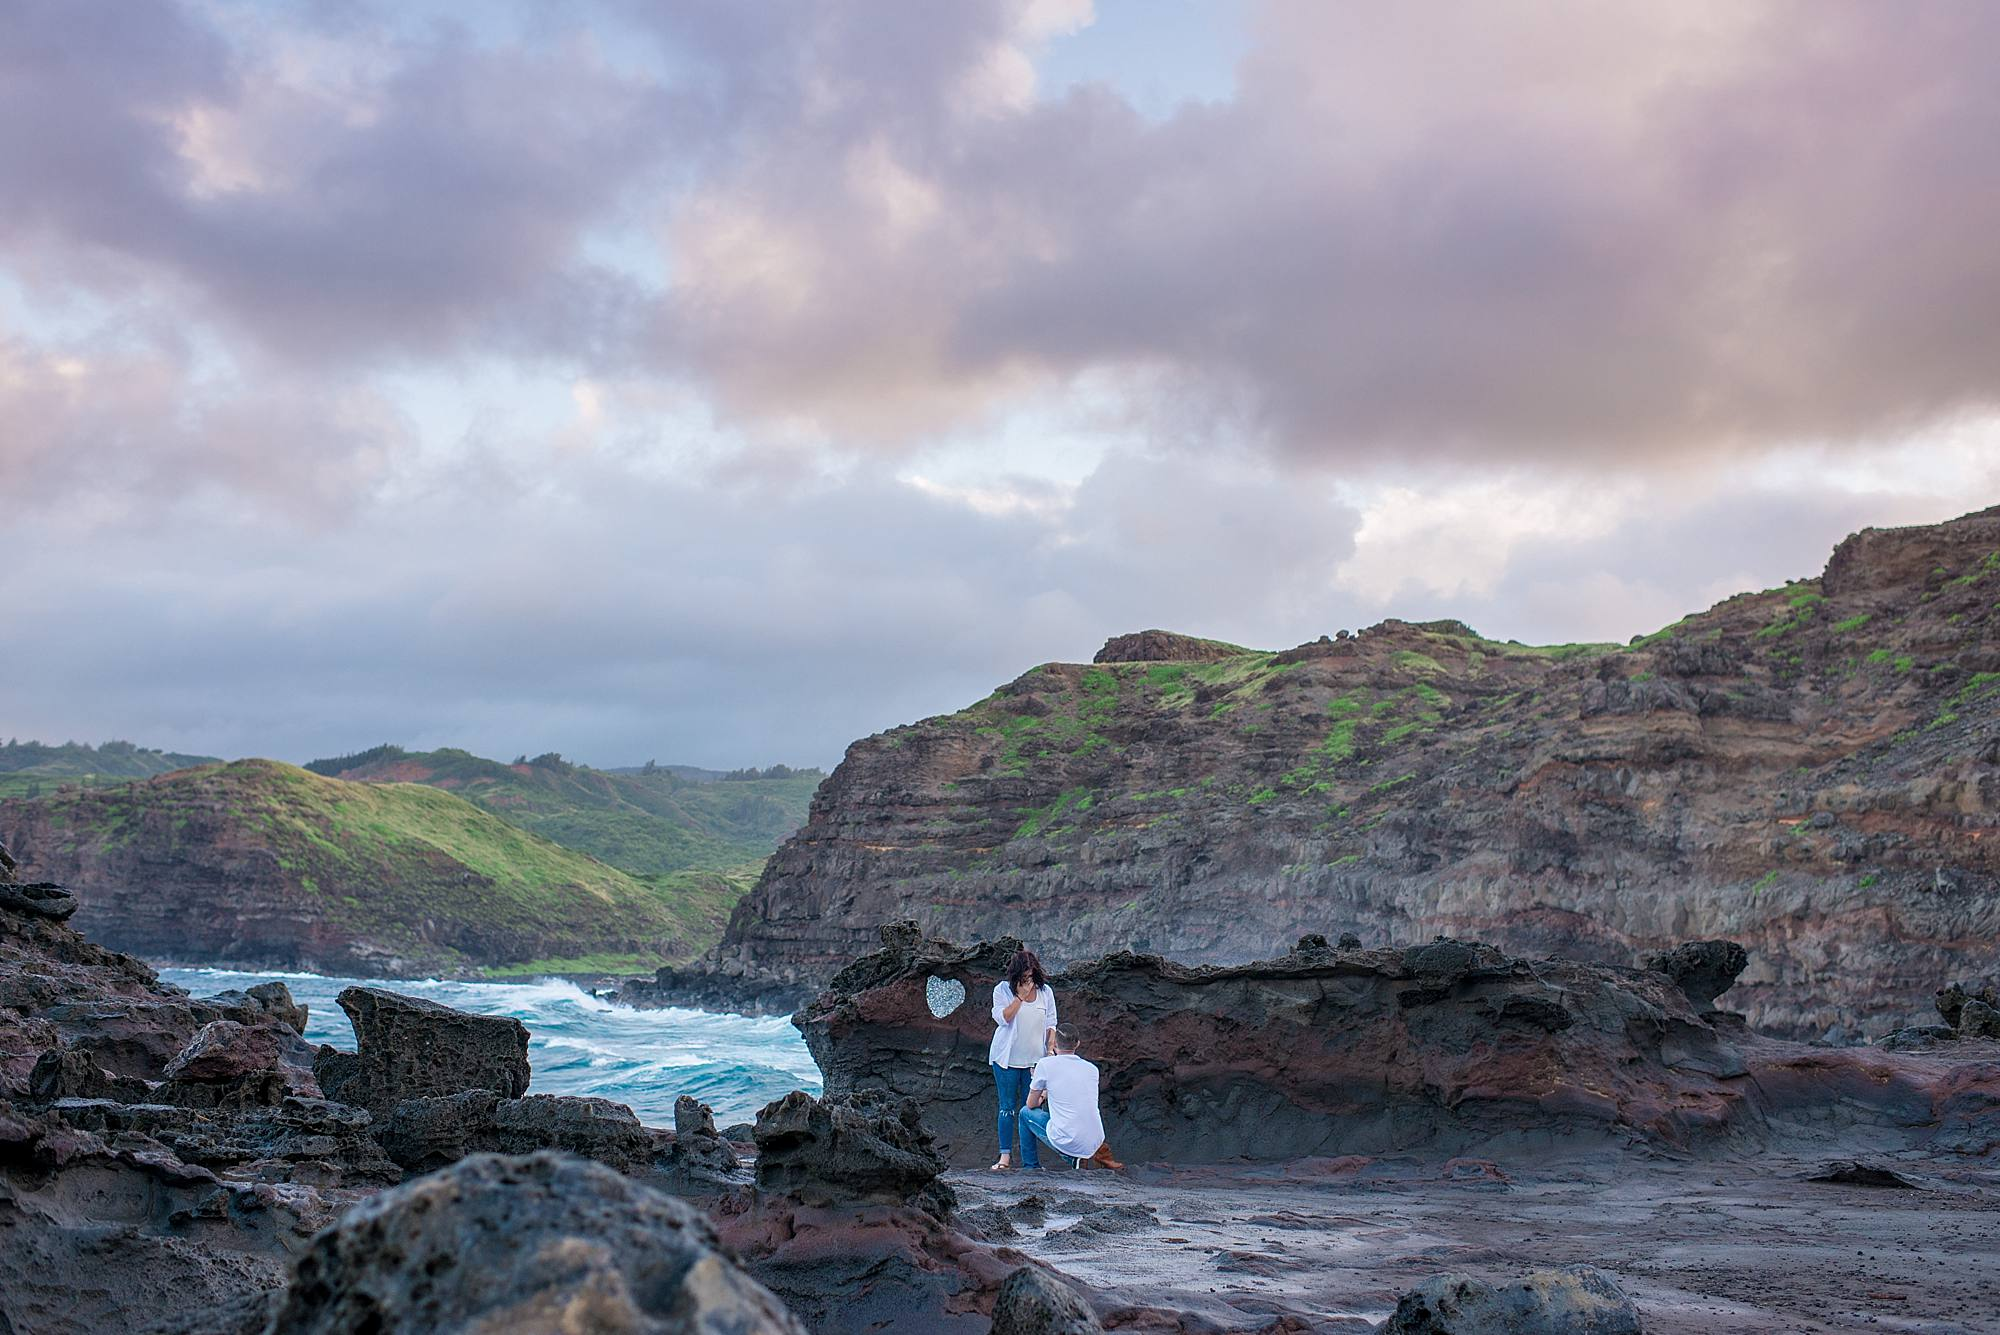 maui-sunset-proposal-at-blowhole-hawaii-proposal_0009